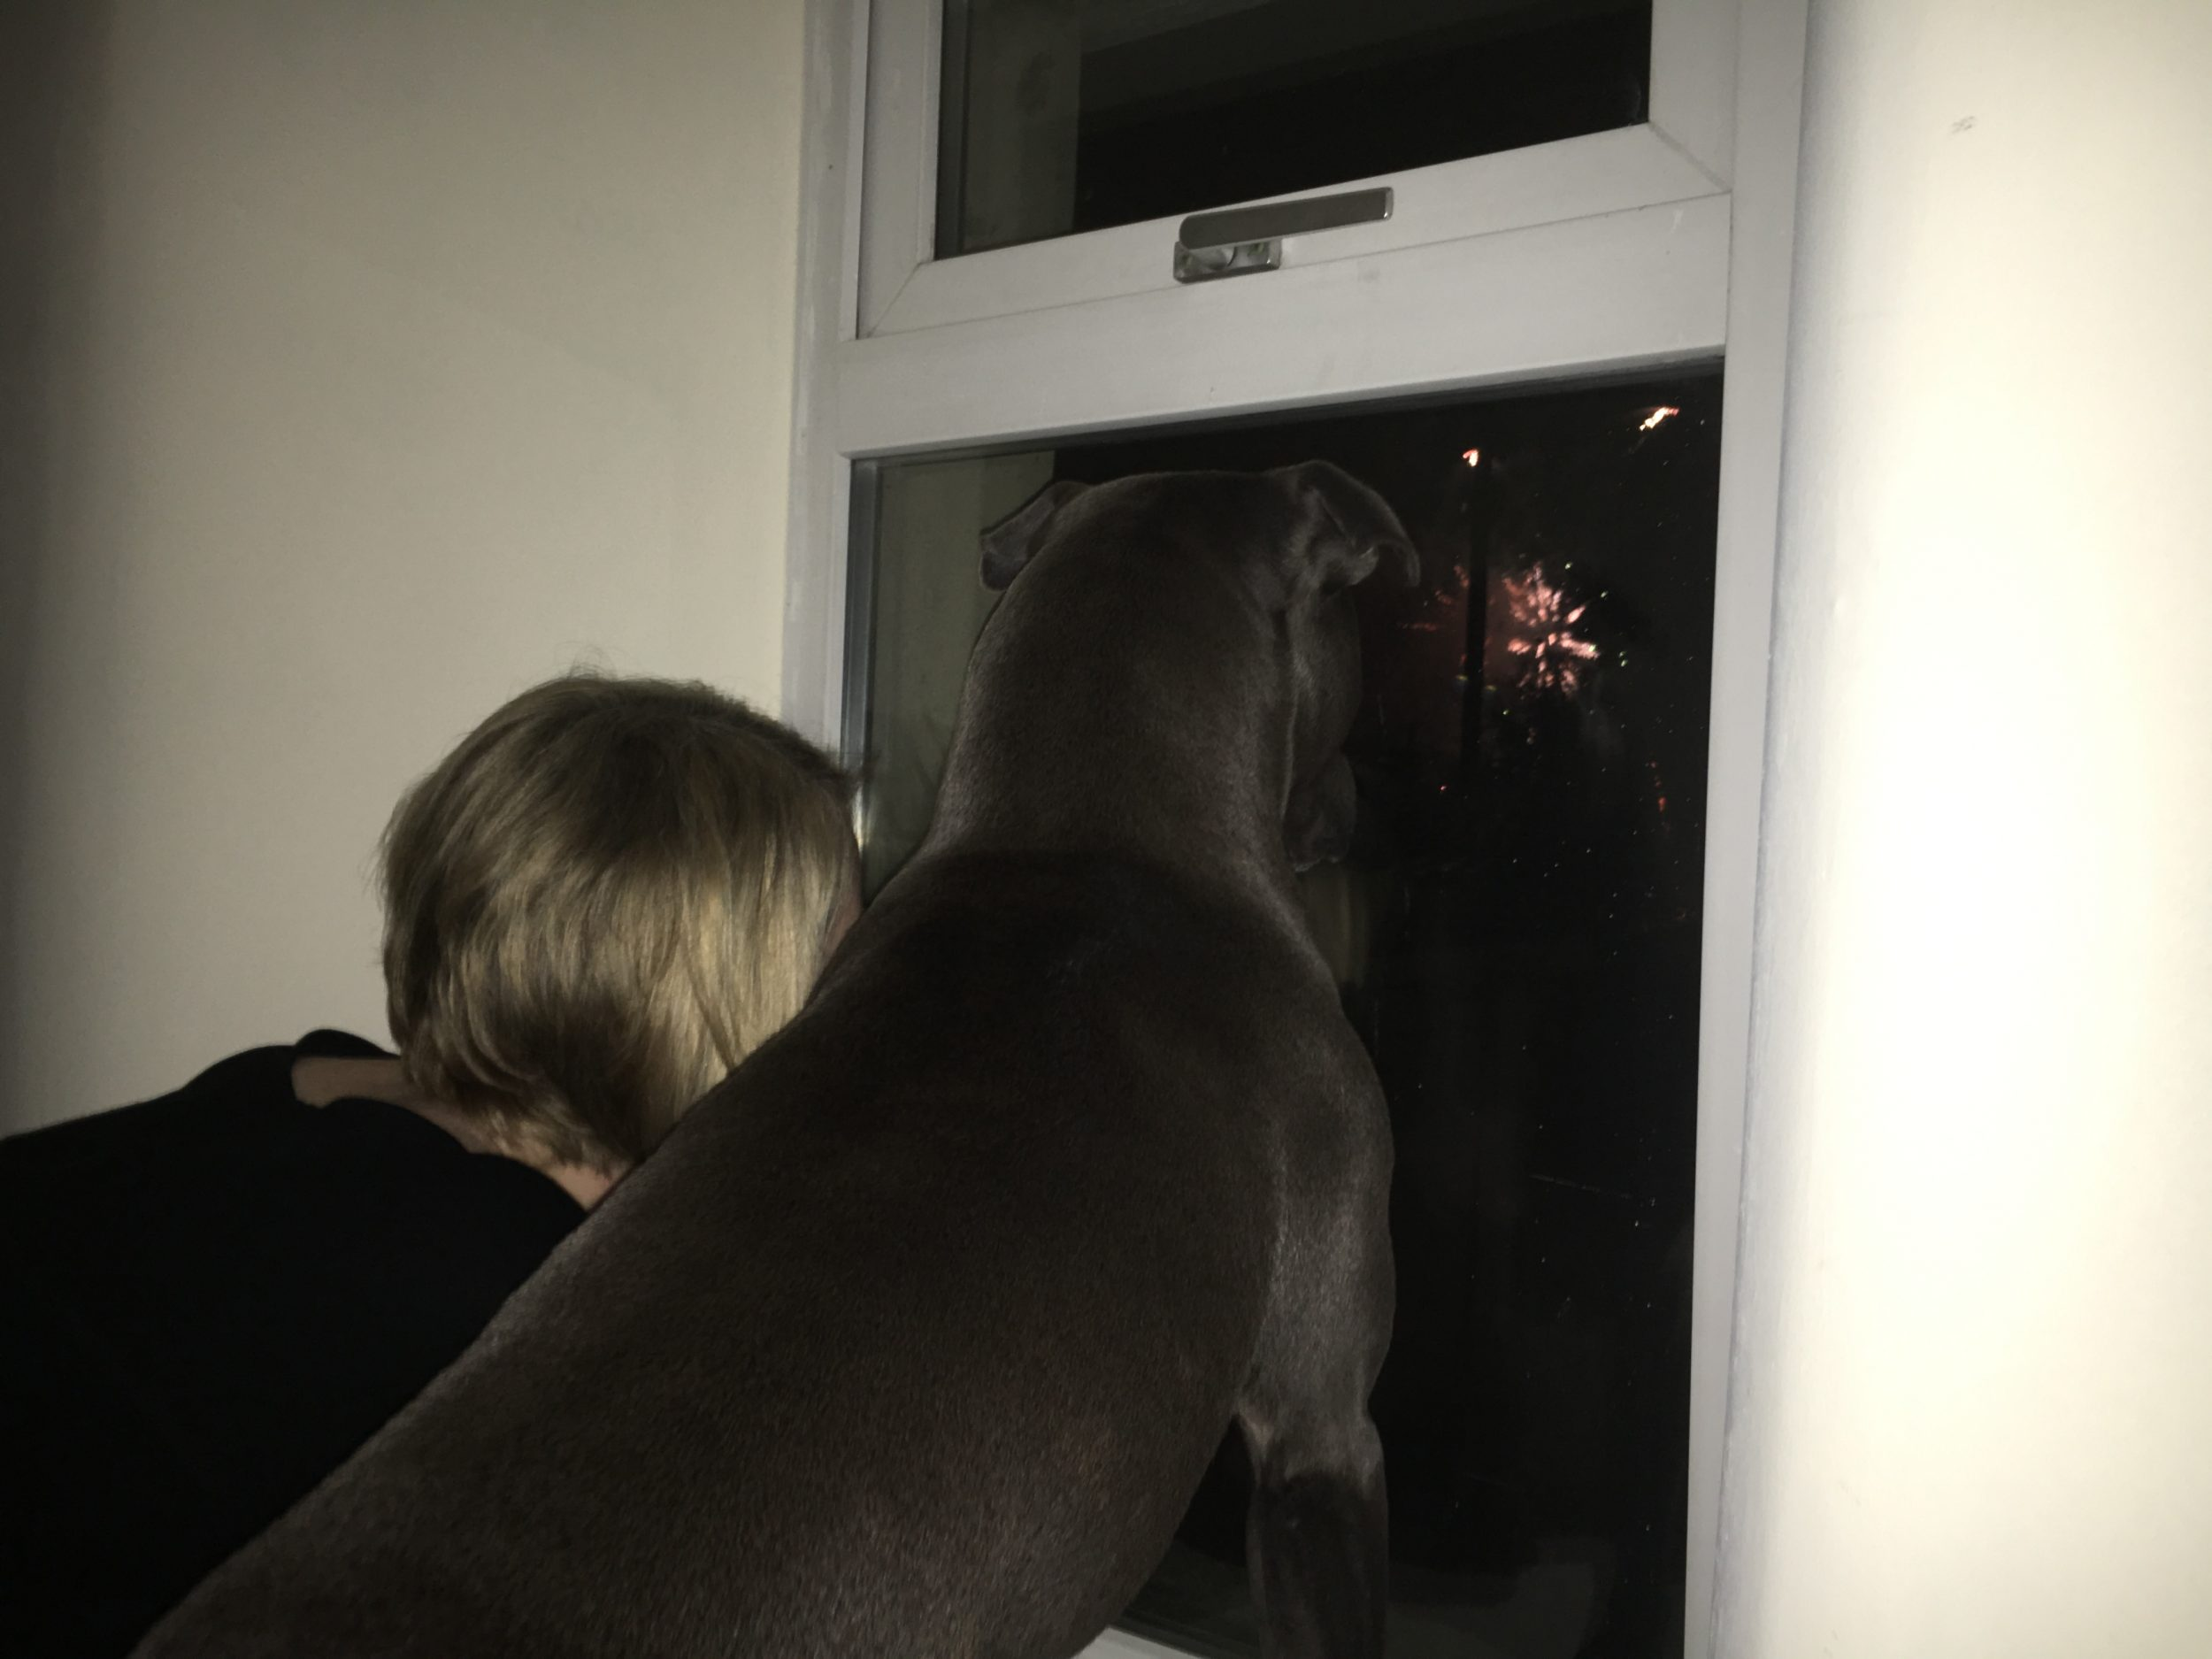 If your dog is scared of fireworks, there are many tips and tricks you can use to make them feel calmer